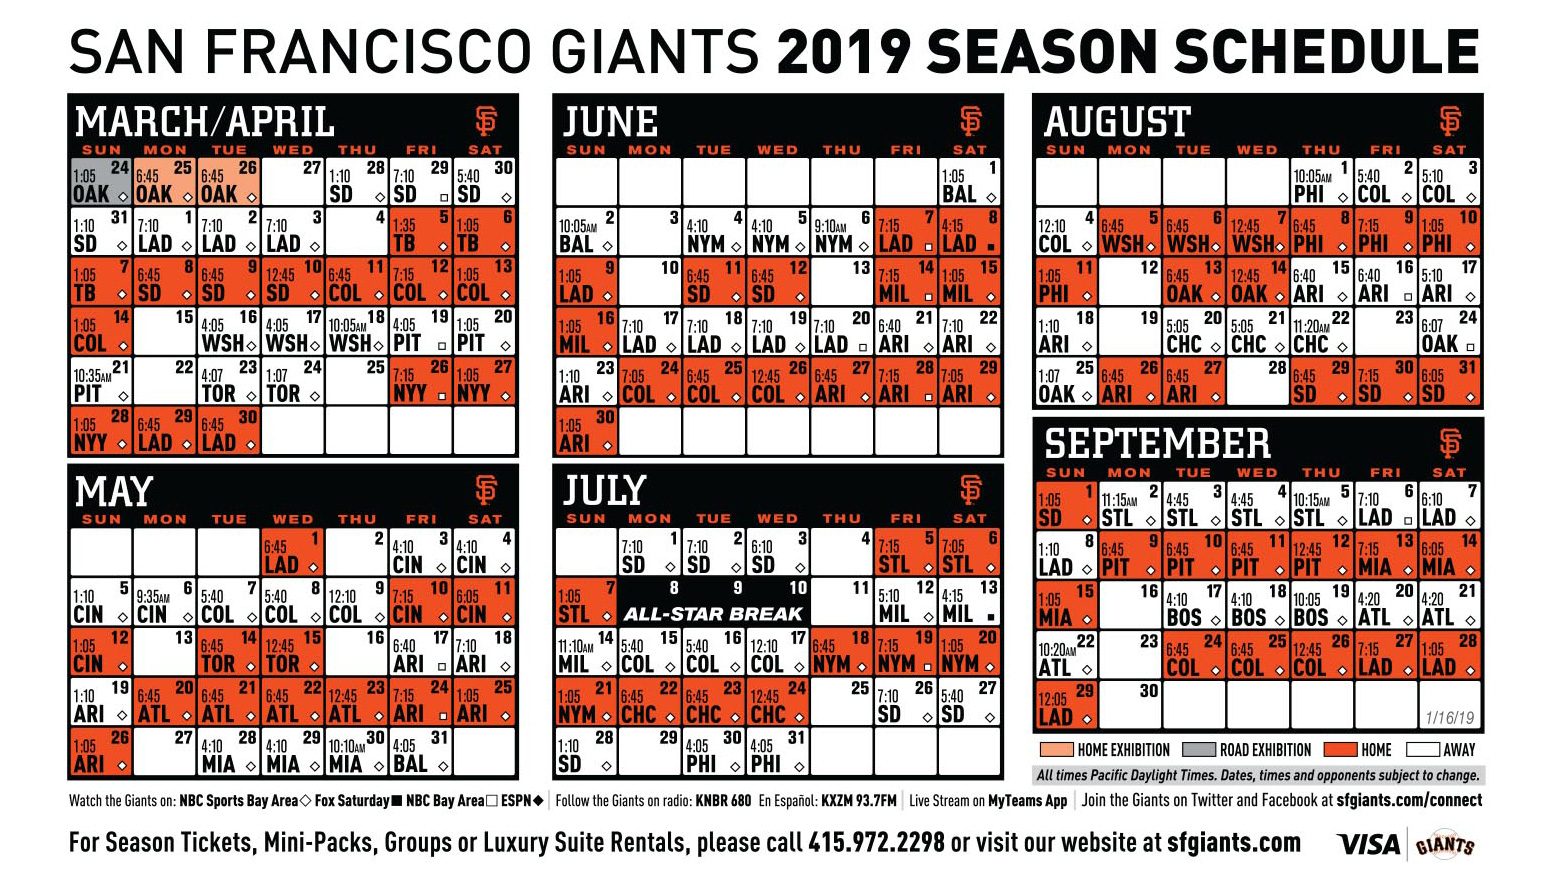 graphic regarding Pittsburgh Pirates Printable Schedule named Giants 2019 Printable Timetable San Francisco Giants